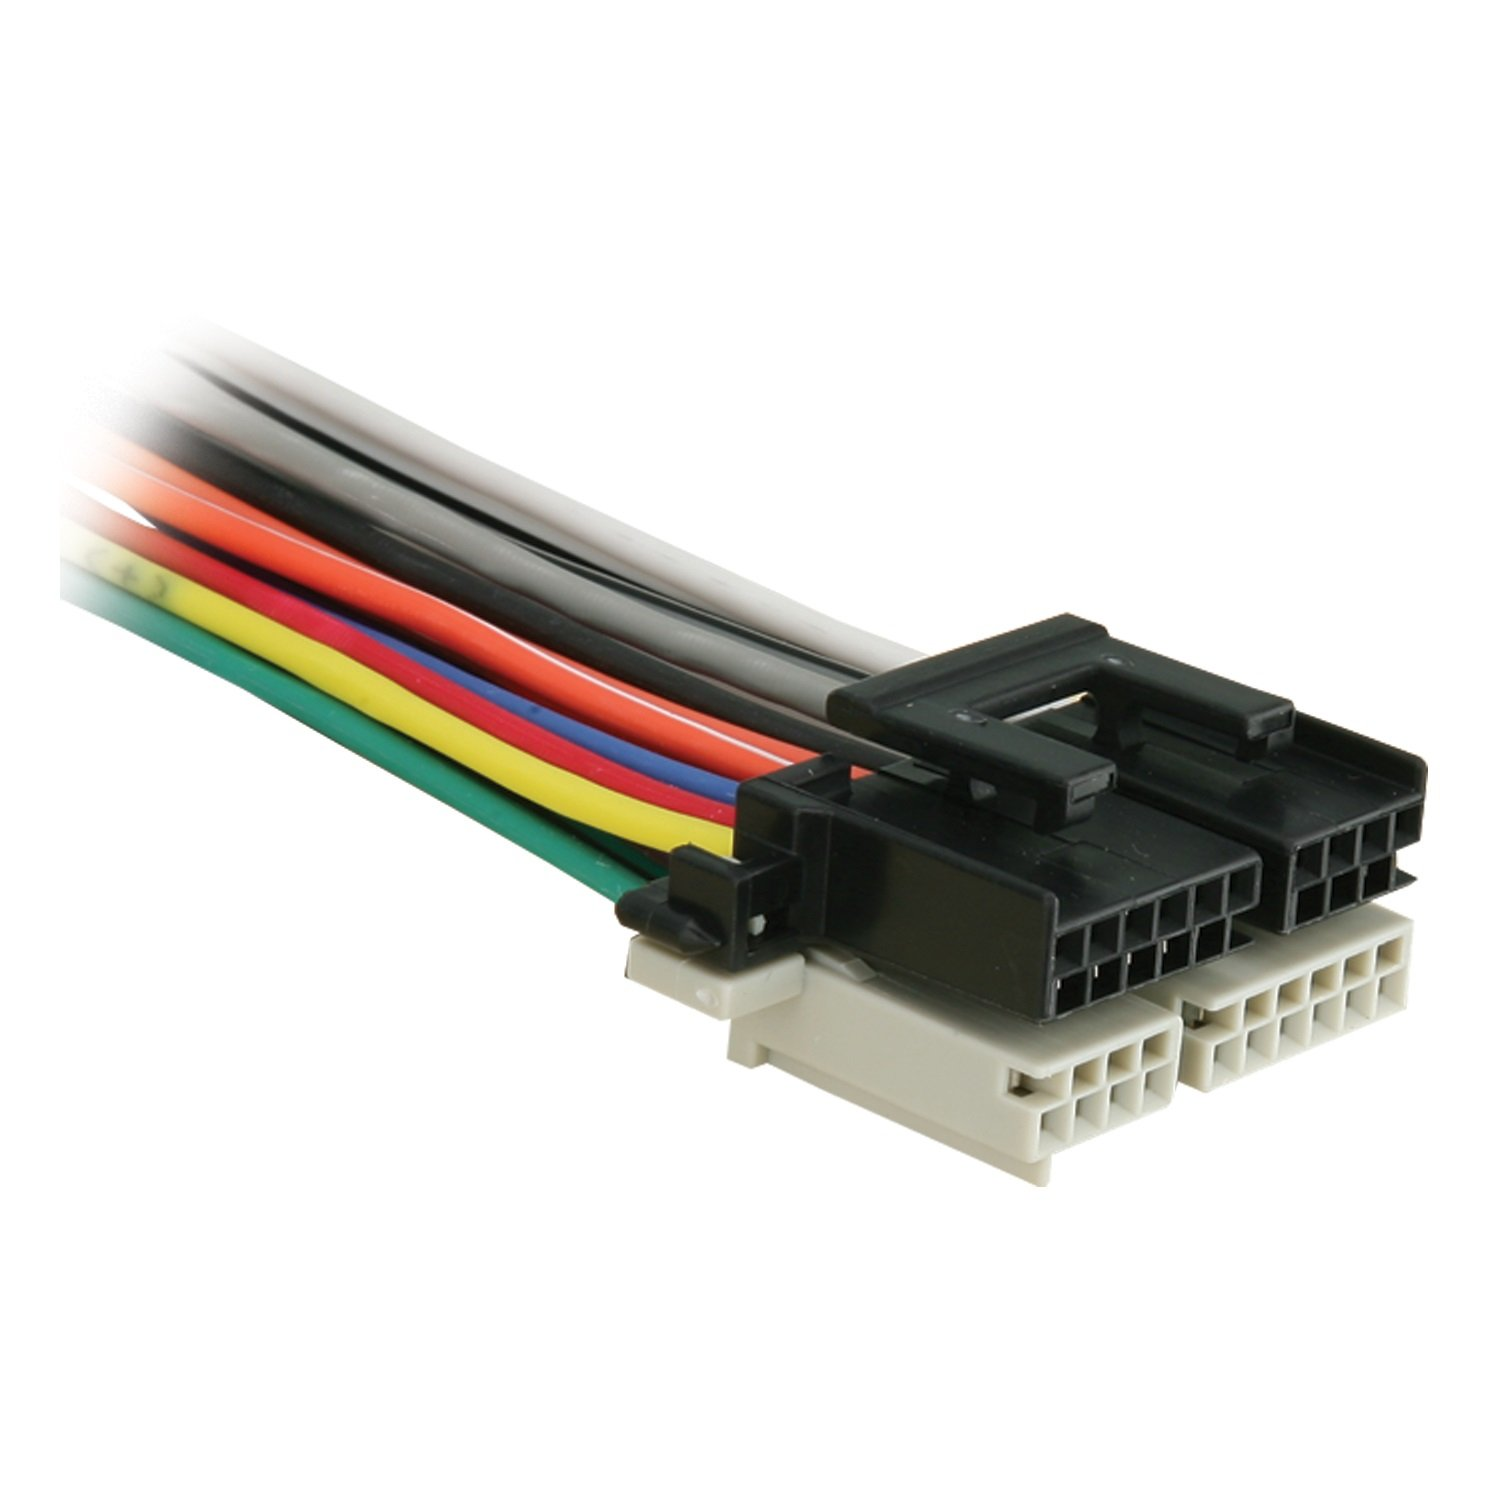 61 L9yWmnpL._SL1500_ amazon com metra reverse wiring harness 71 1858 1 for select 1988 m wire harness code at bakdesigns.co